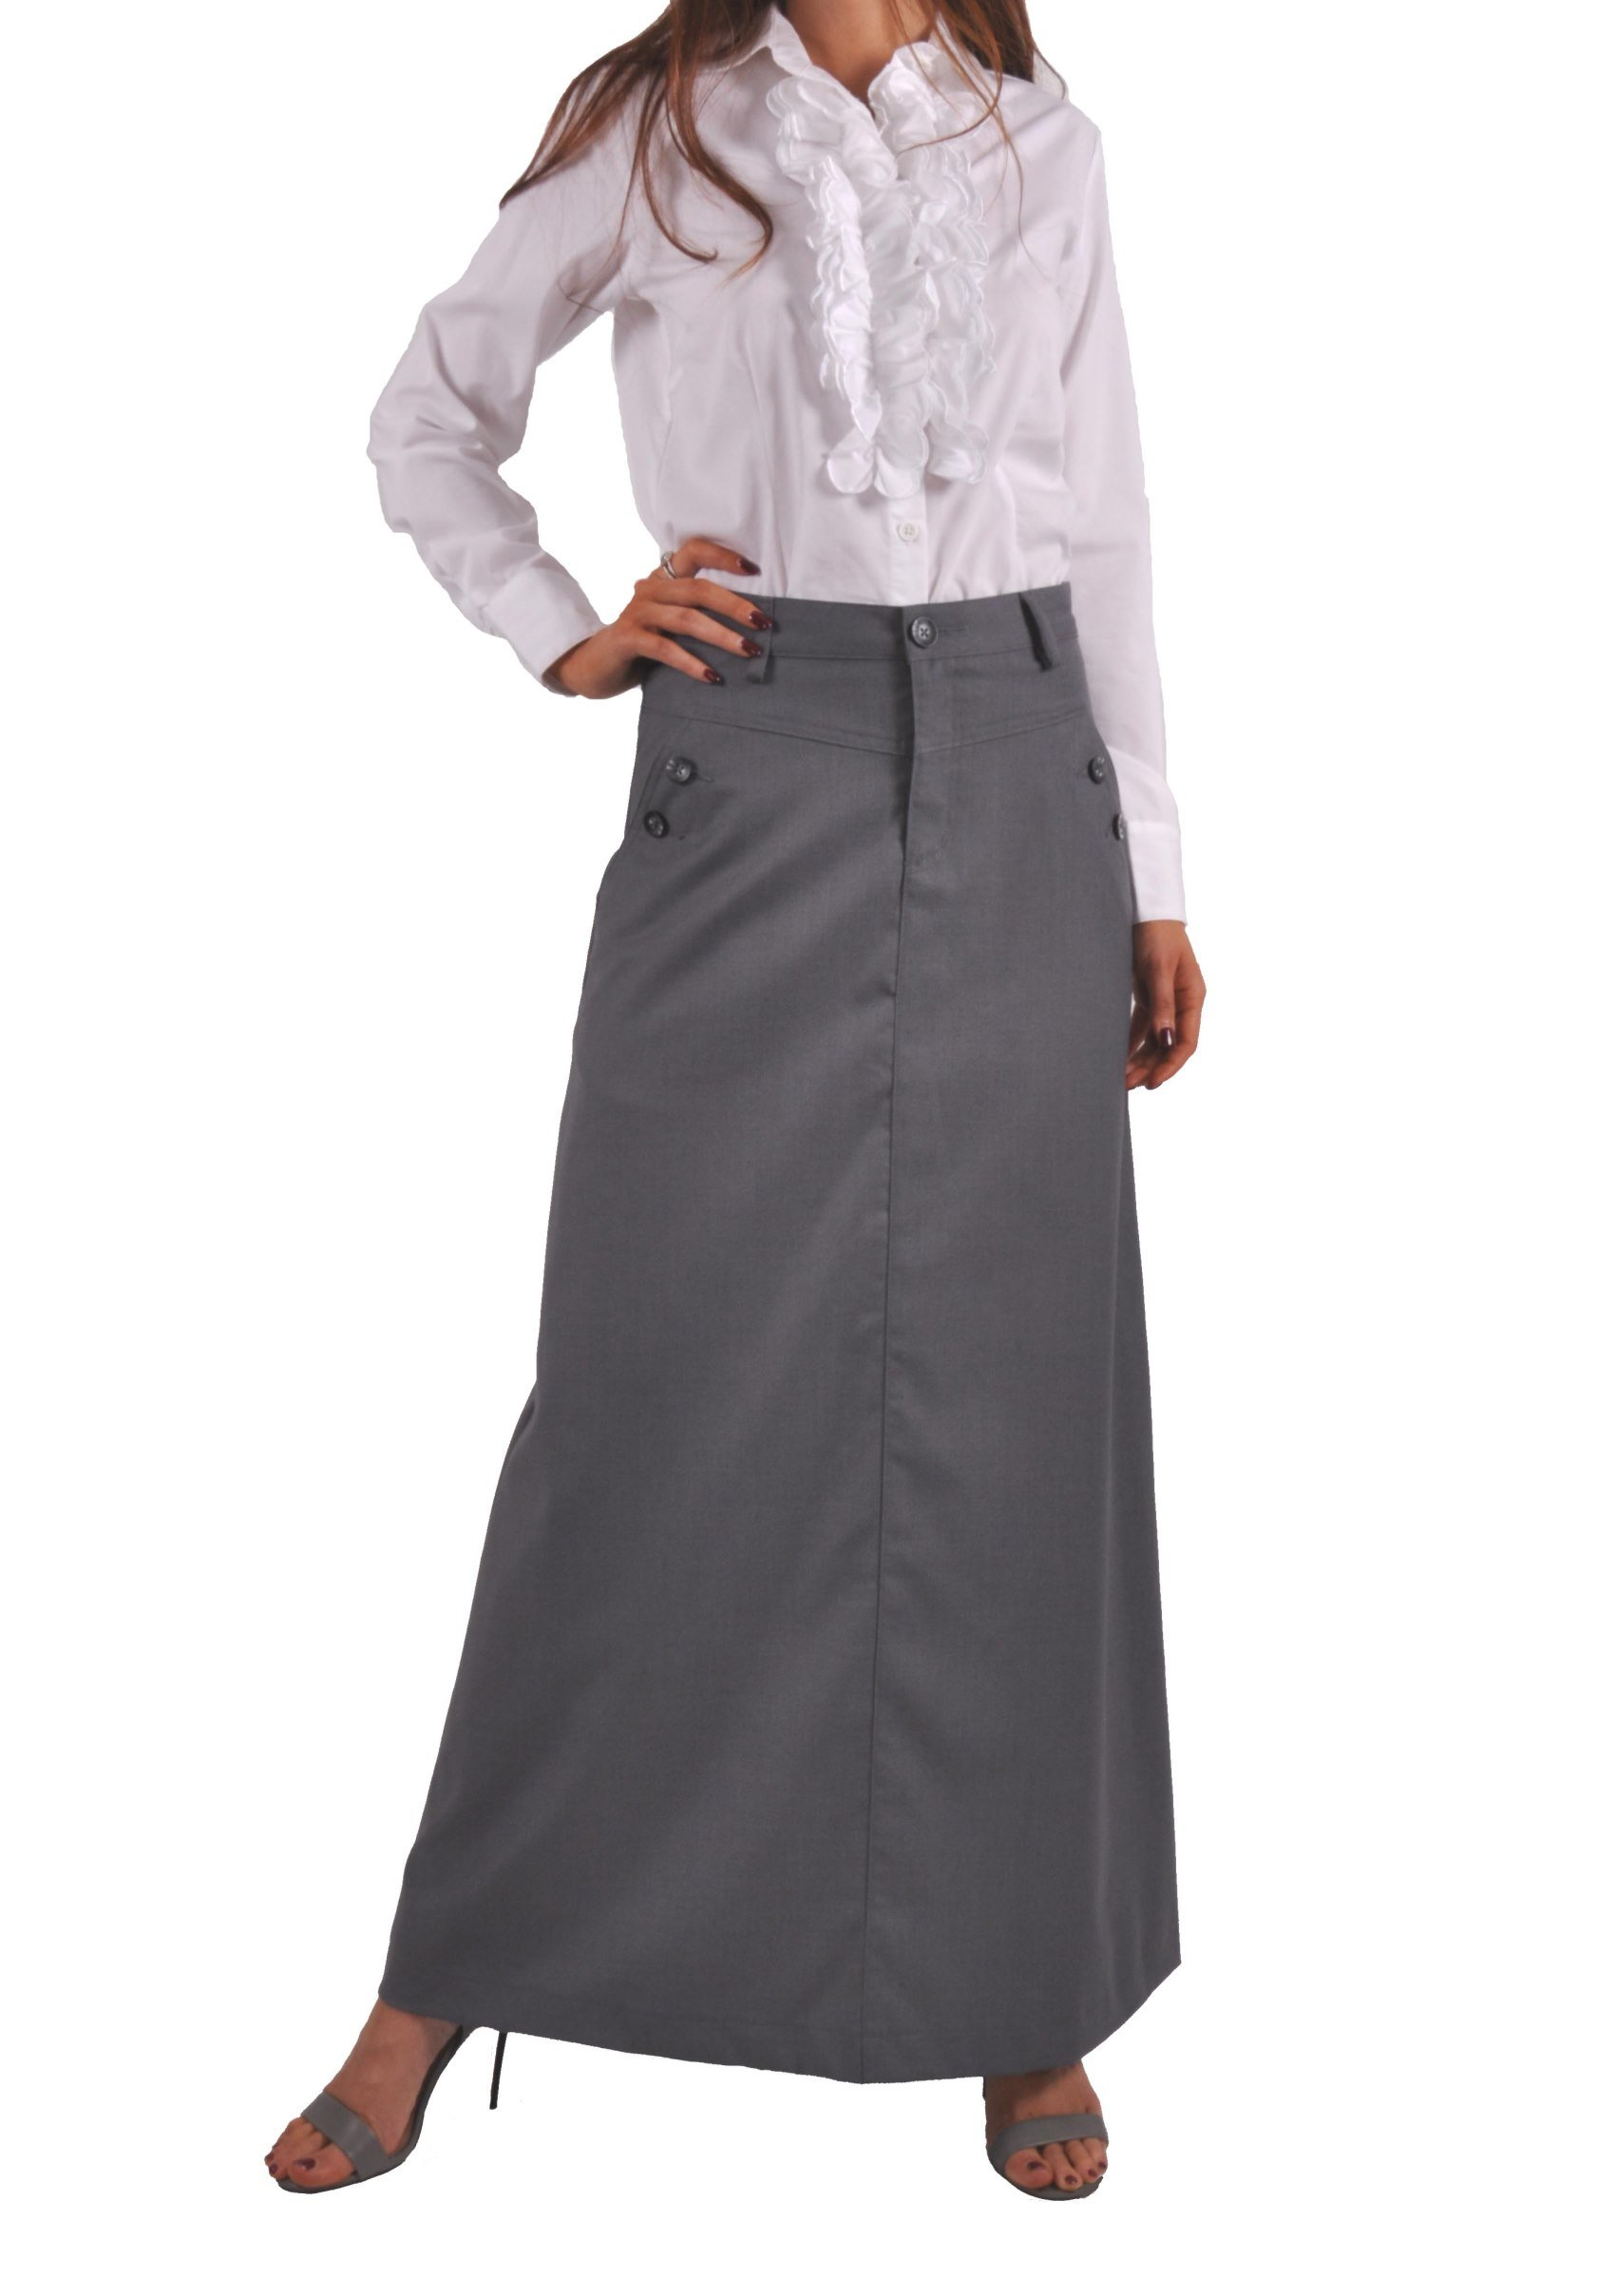 Style J Just Chic Gray Long Skirt-Gray-34(14)